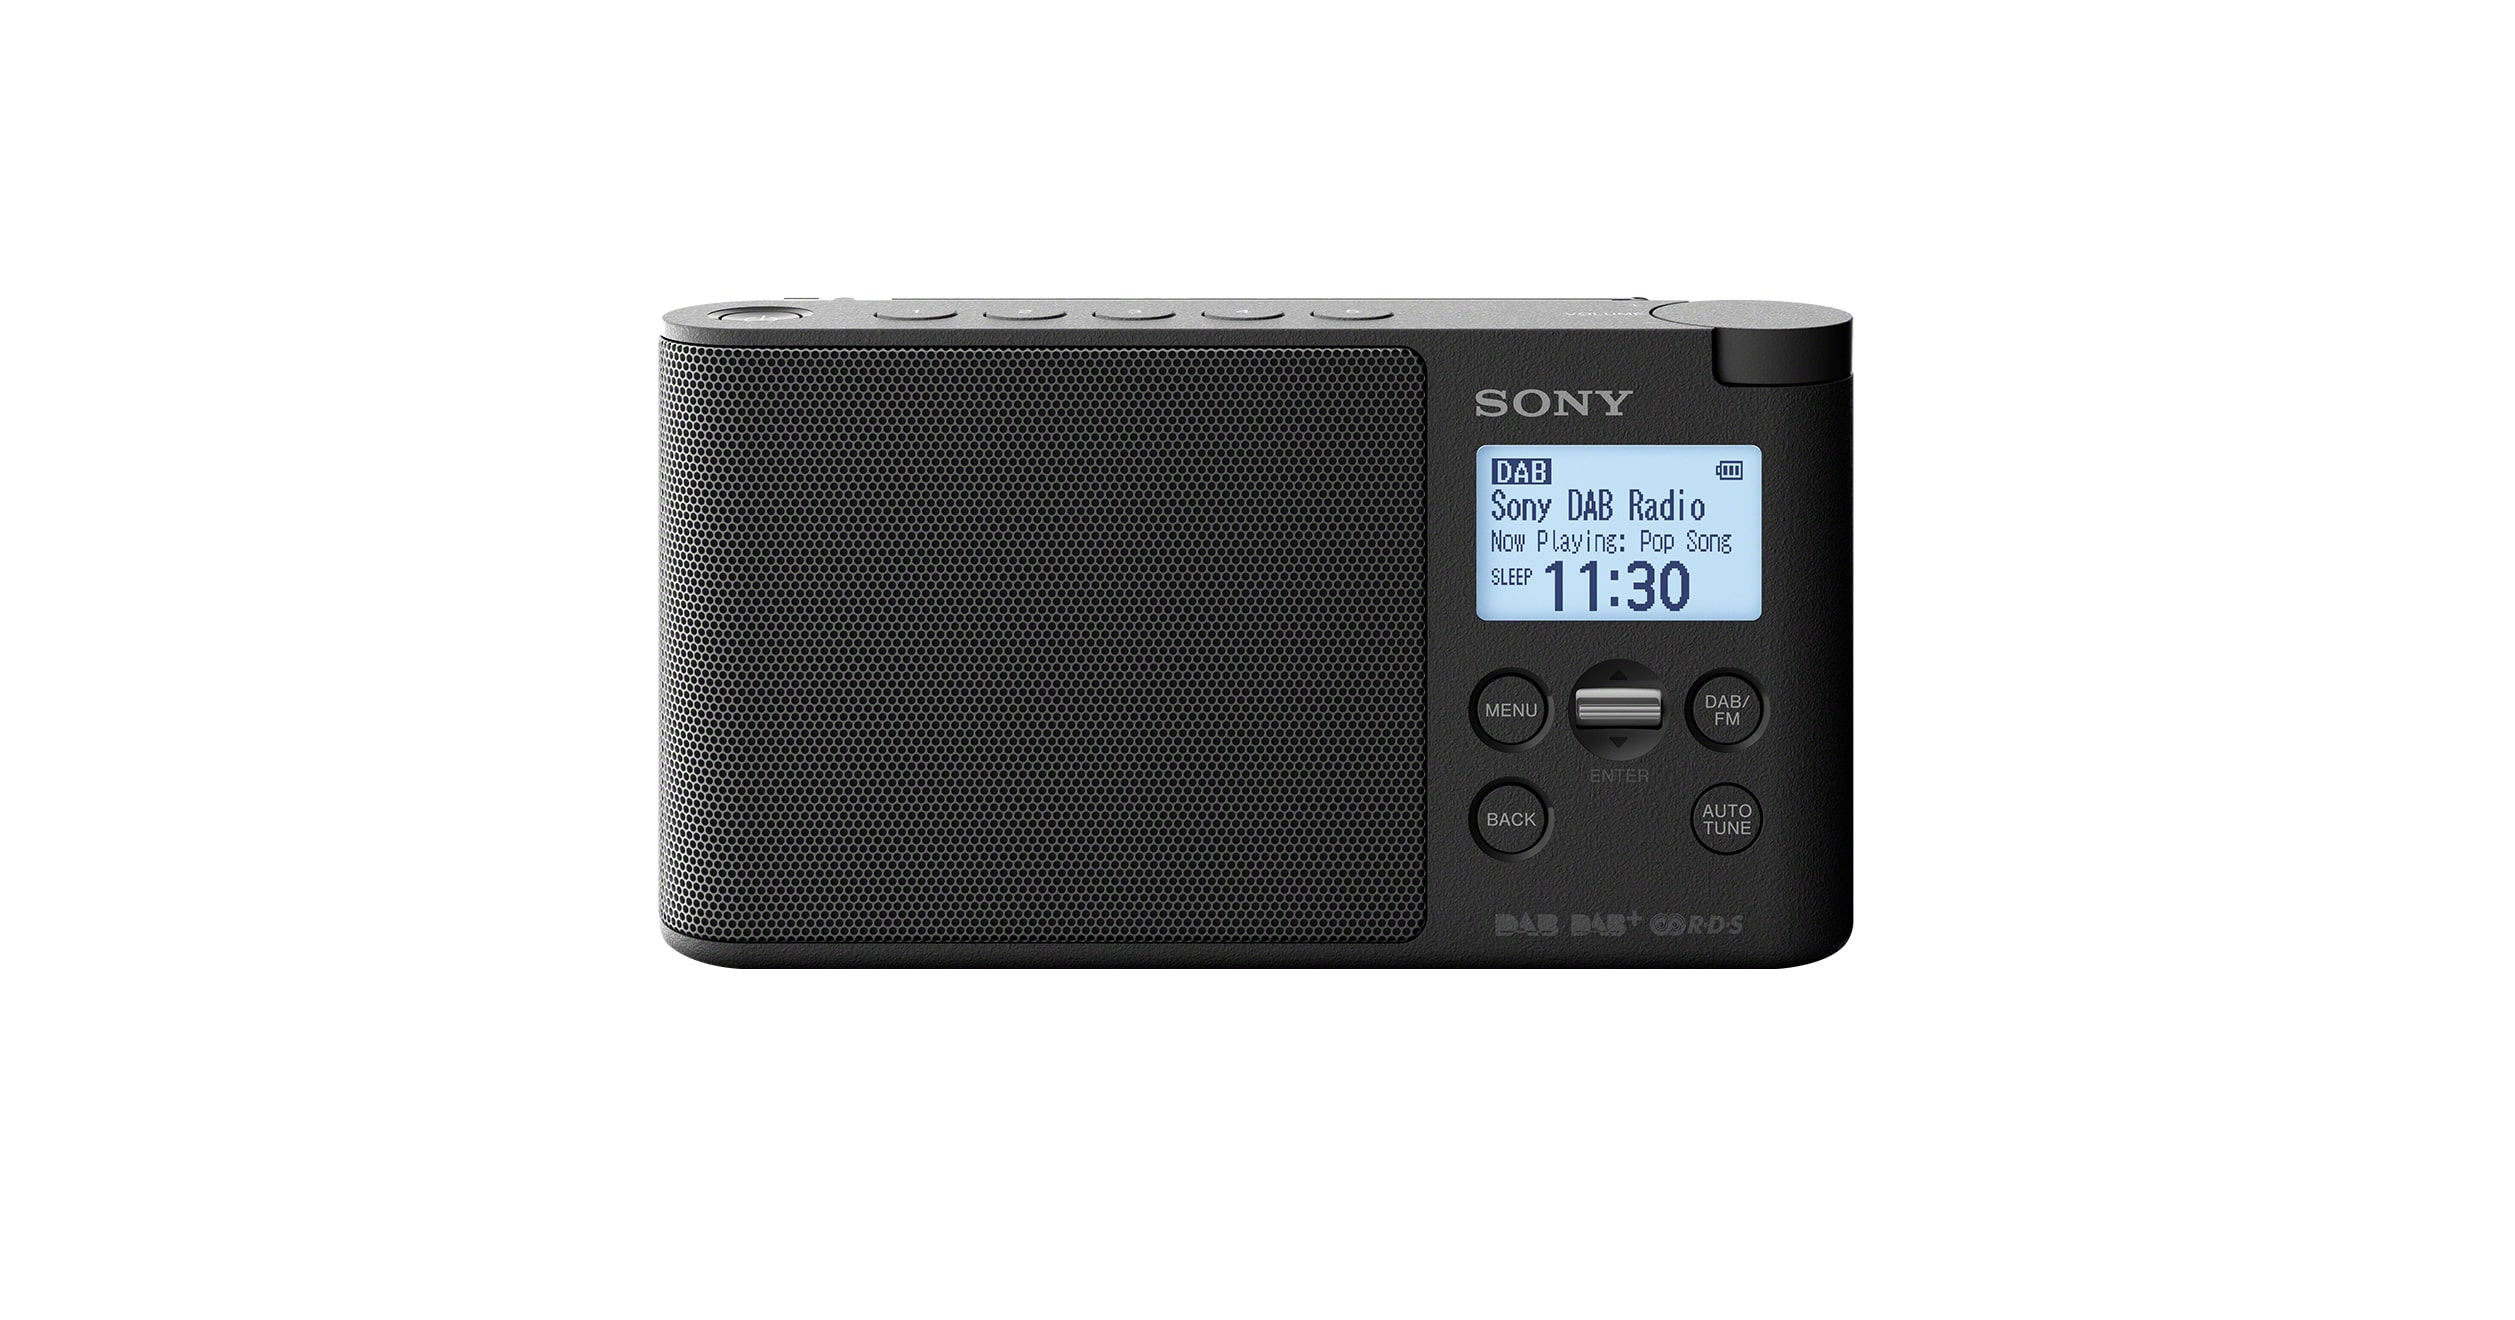 xdr s41d reviews ratings dab radios sony uk. Black Bedroom Furniture Sets. Home Design Ideas